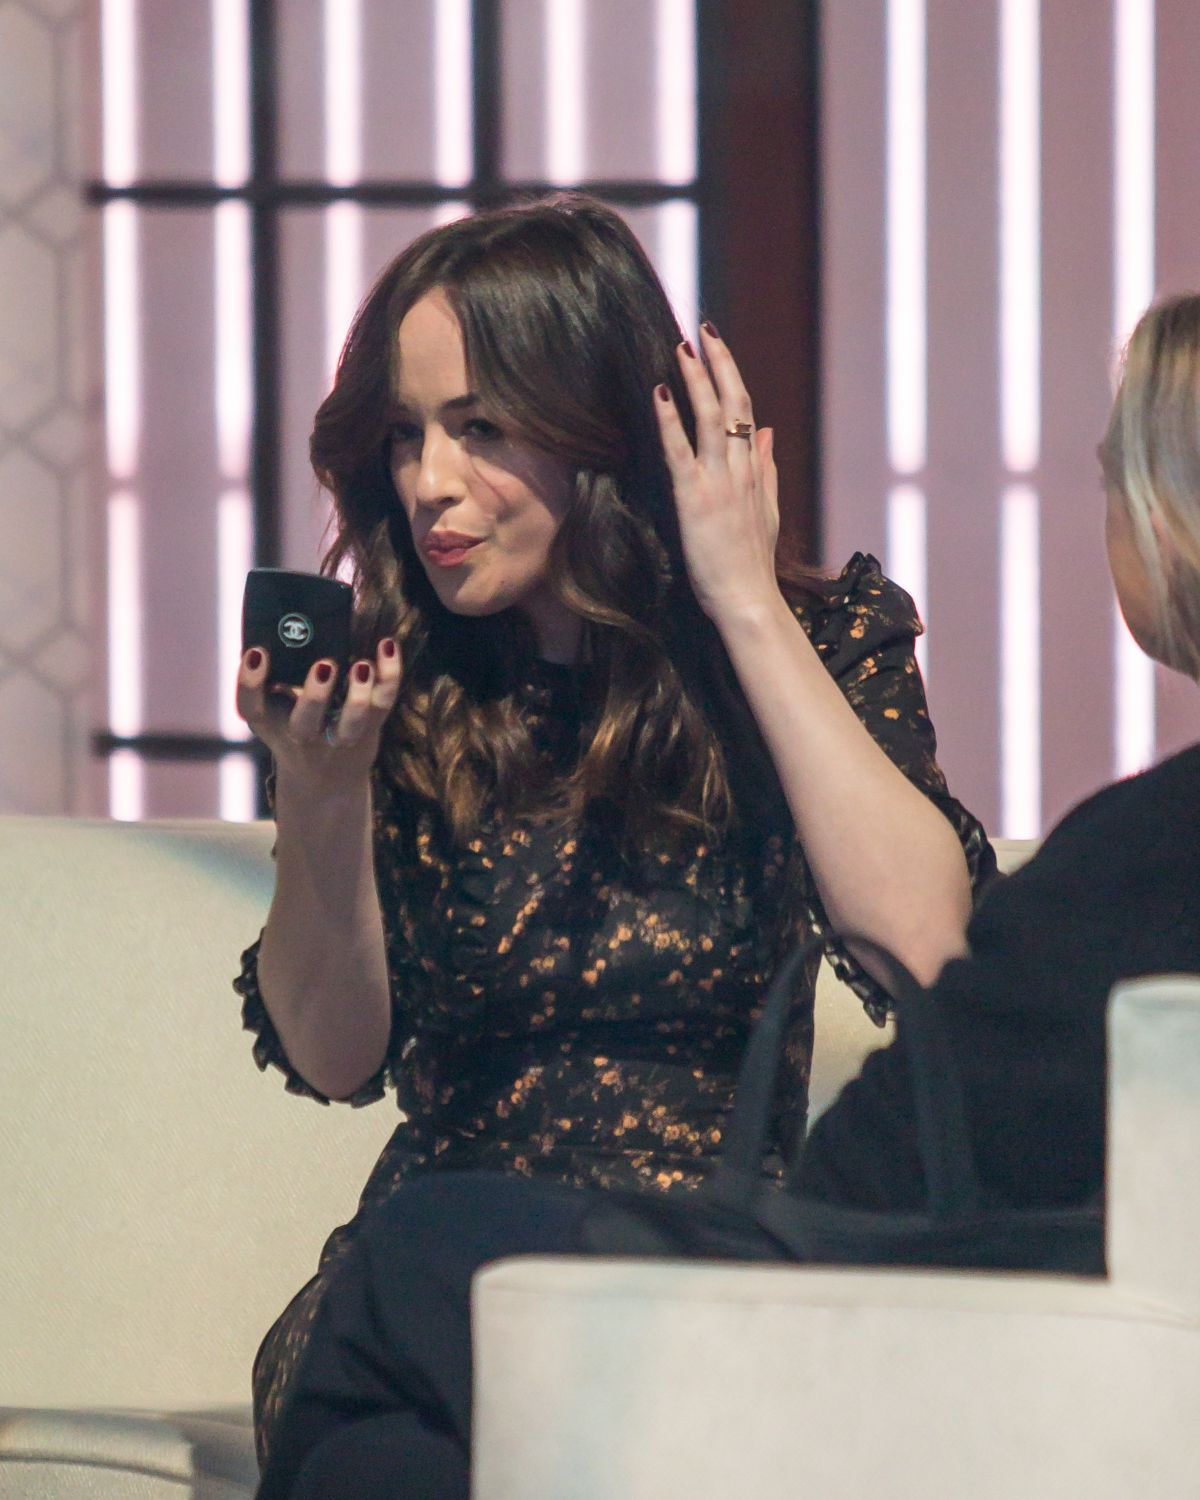 Communication on this topic: Natalia uliasz lingerie, dakota-johnson-today-show-in-new-york/